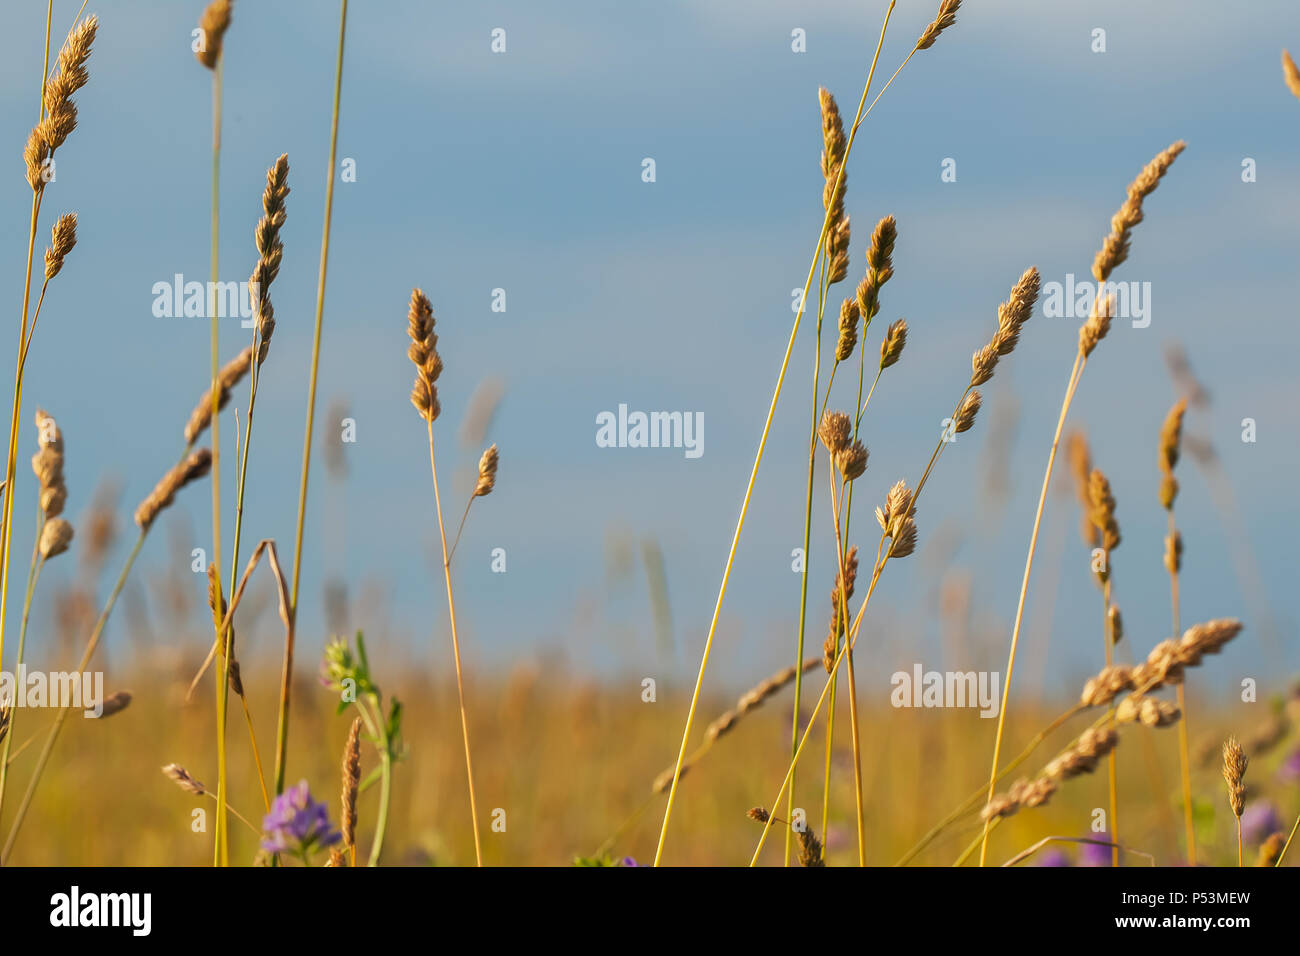 Yellow grass field, several ears of corn - Stock Image